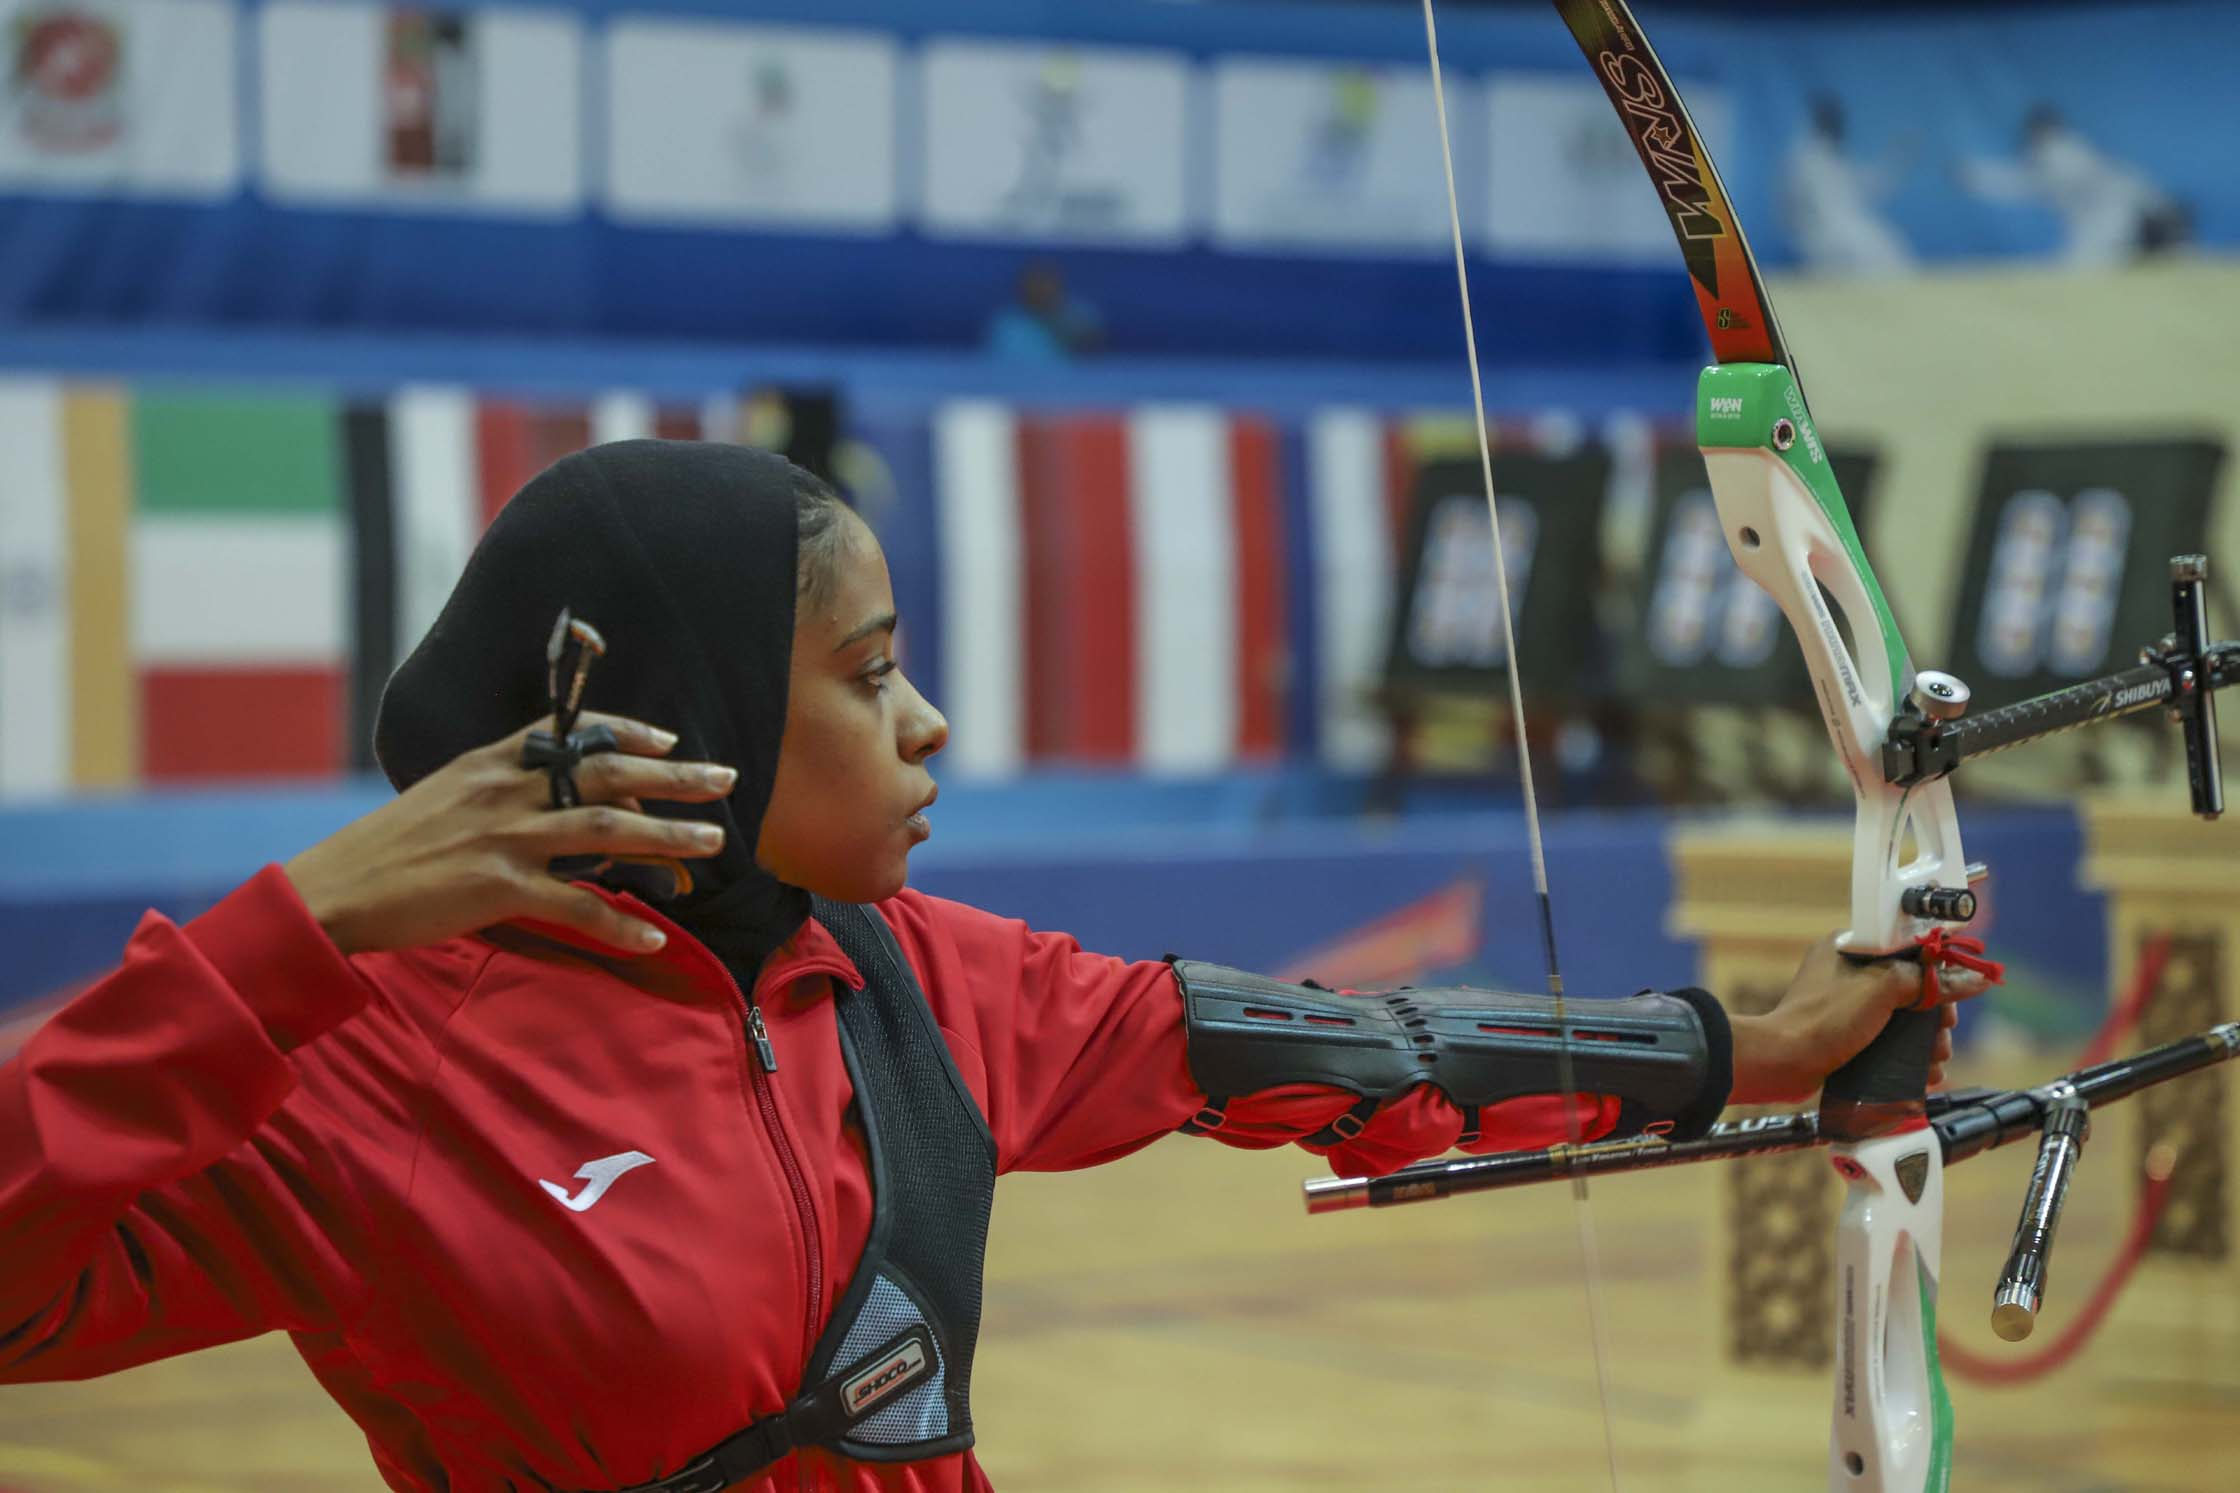 sharjah and bahrain right on target for archery golds2